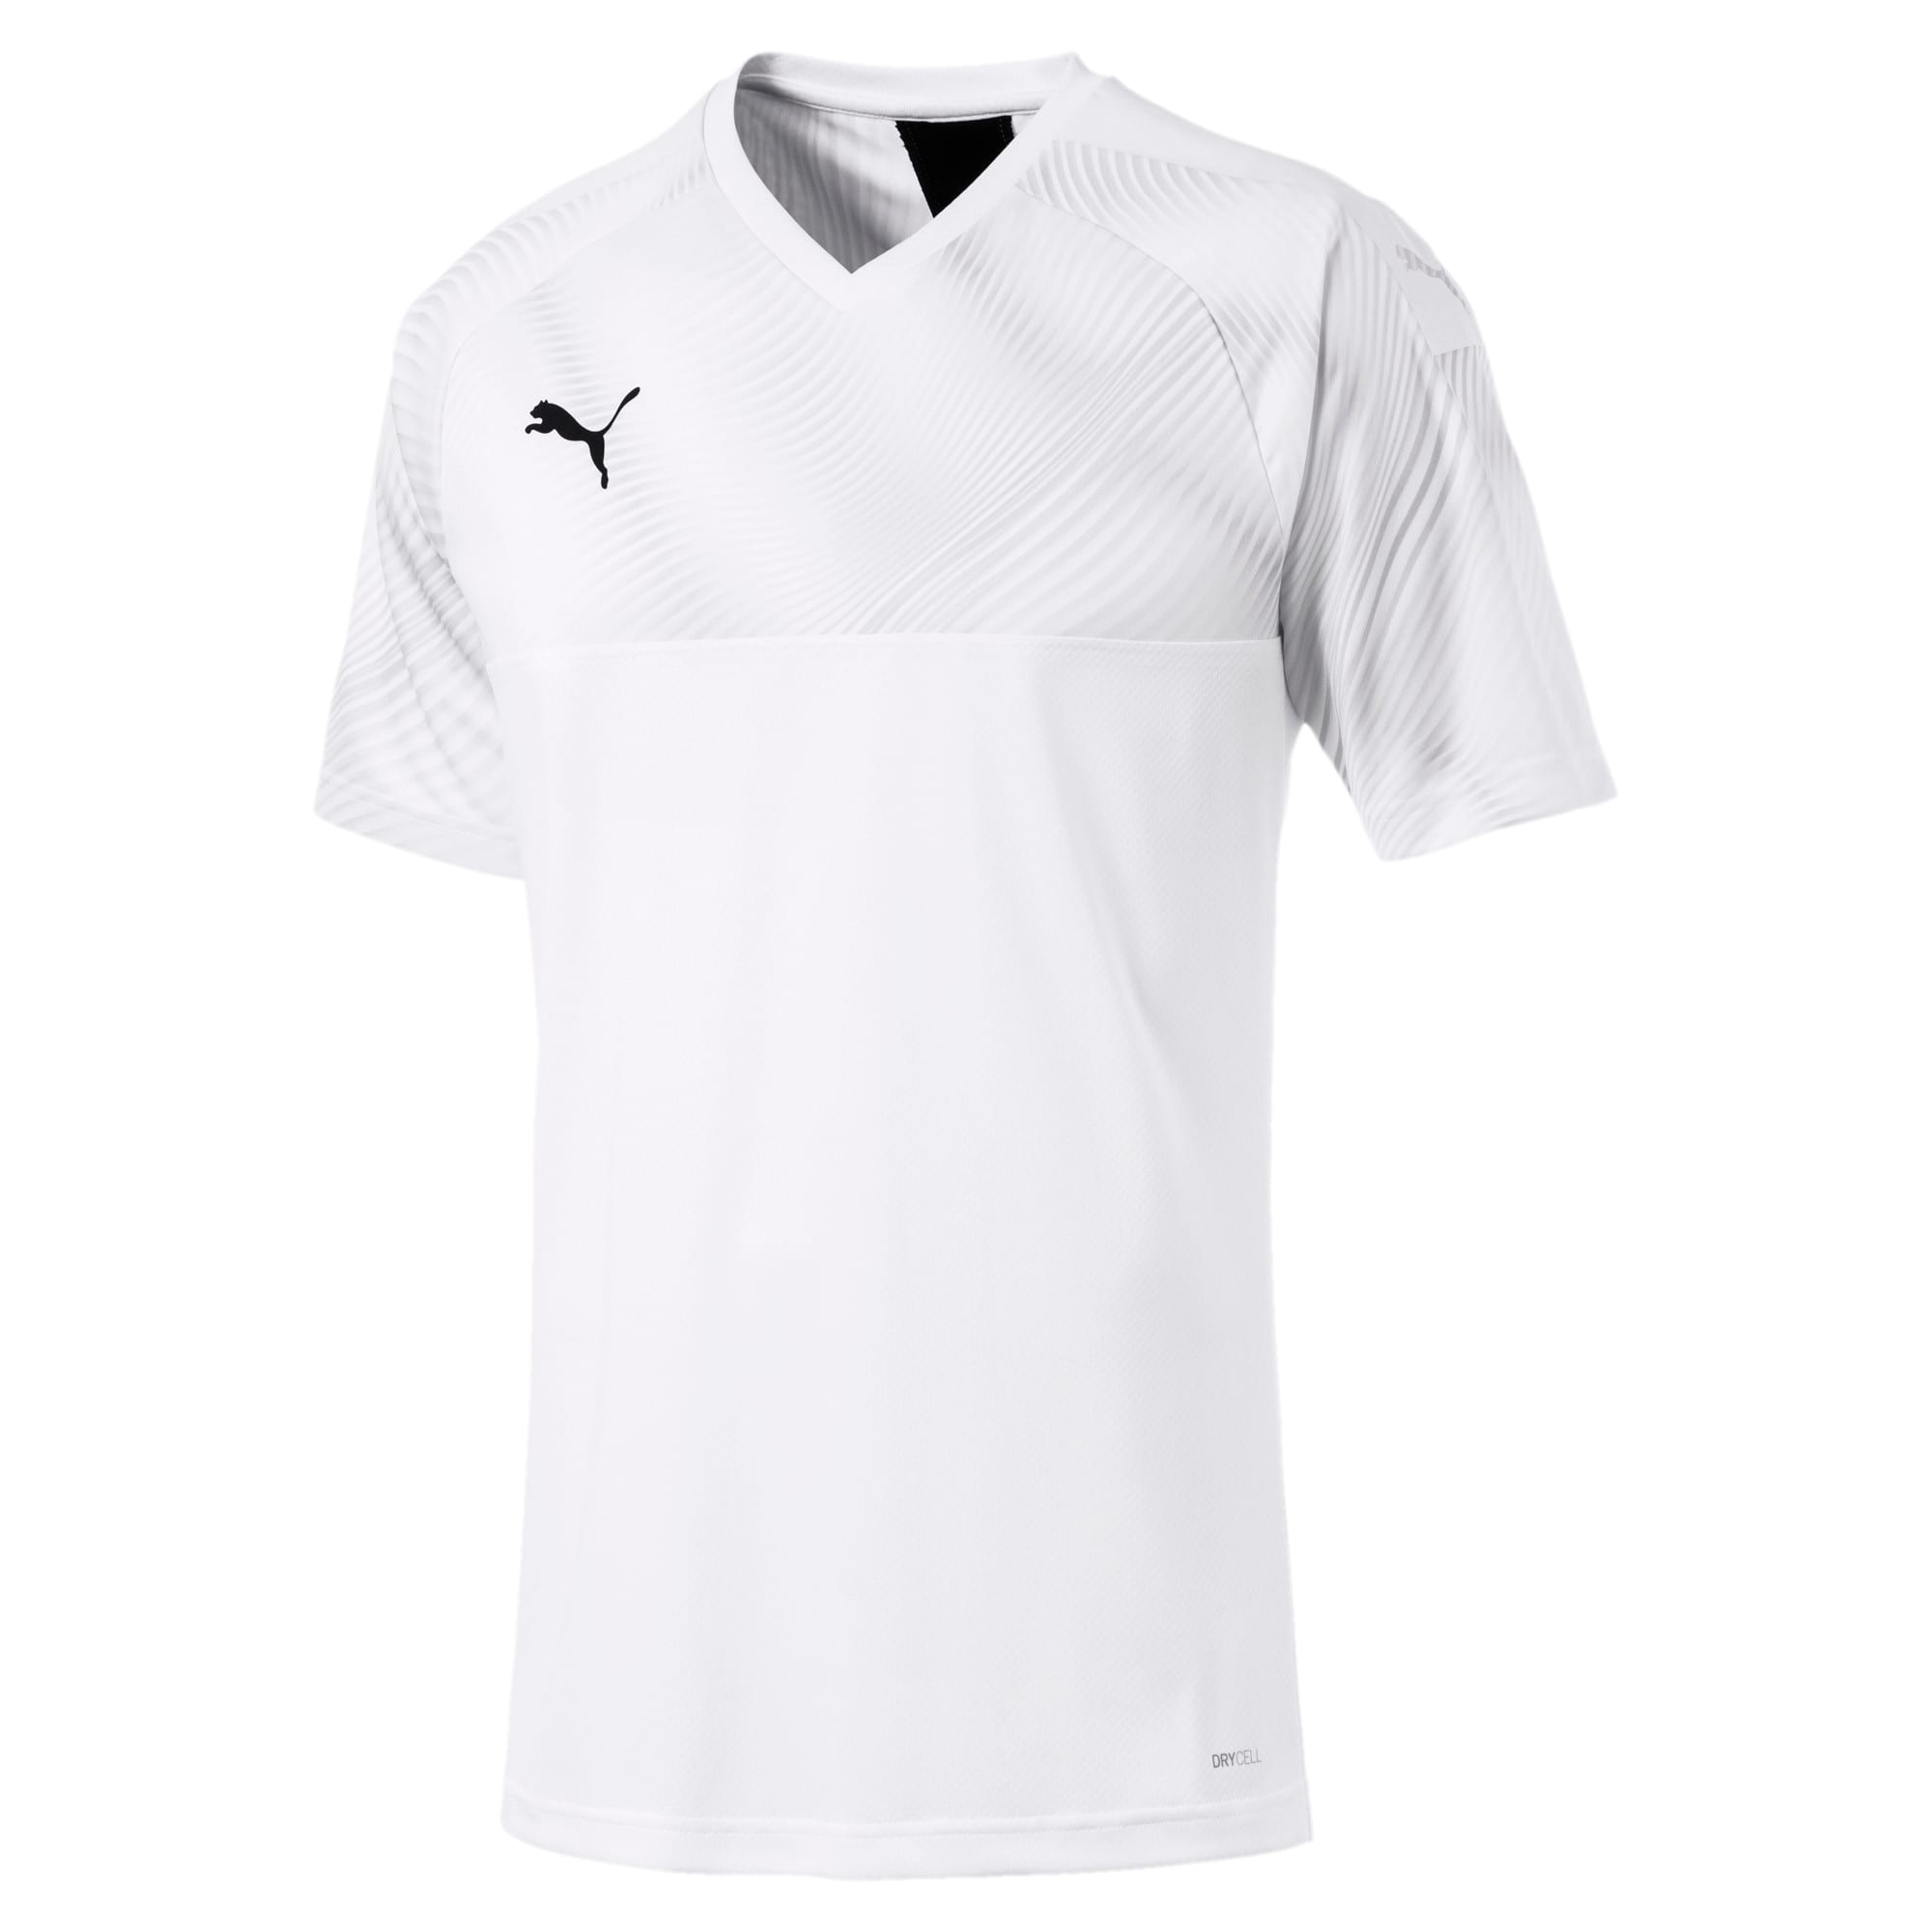 Thumbnail 4 of CUP Herren Fußball Trikot, Puma White-Puma Black, medium